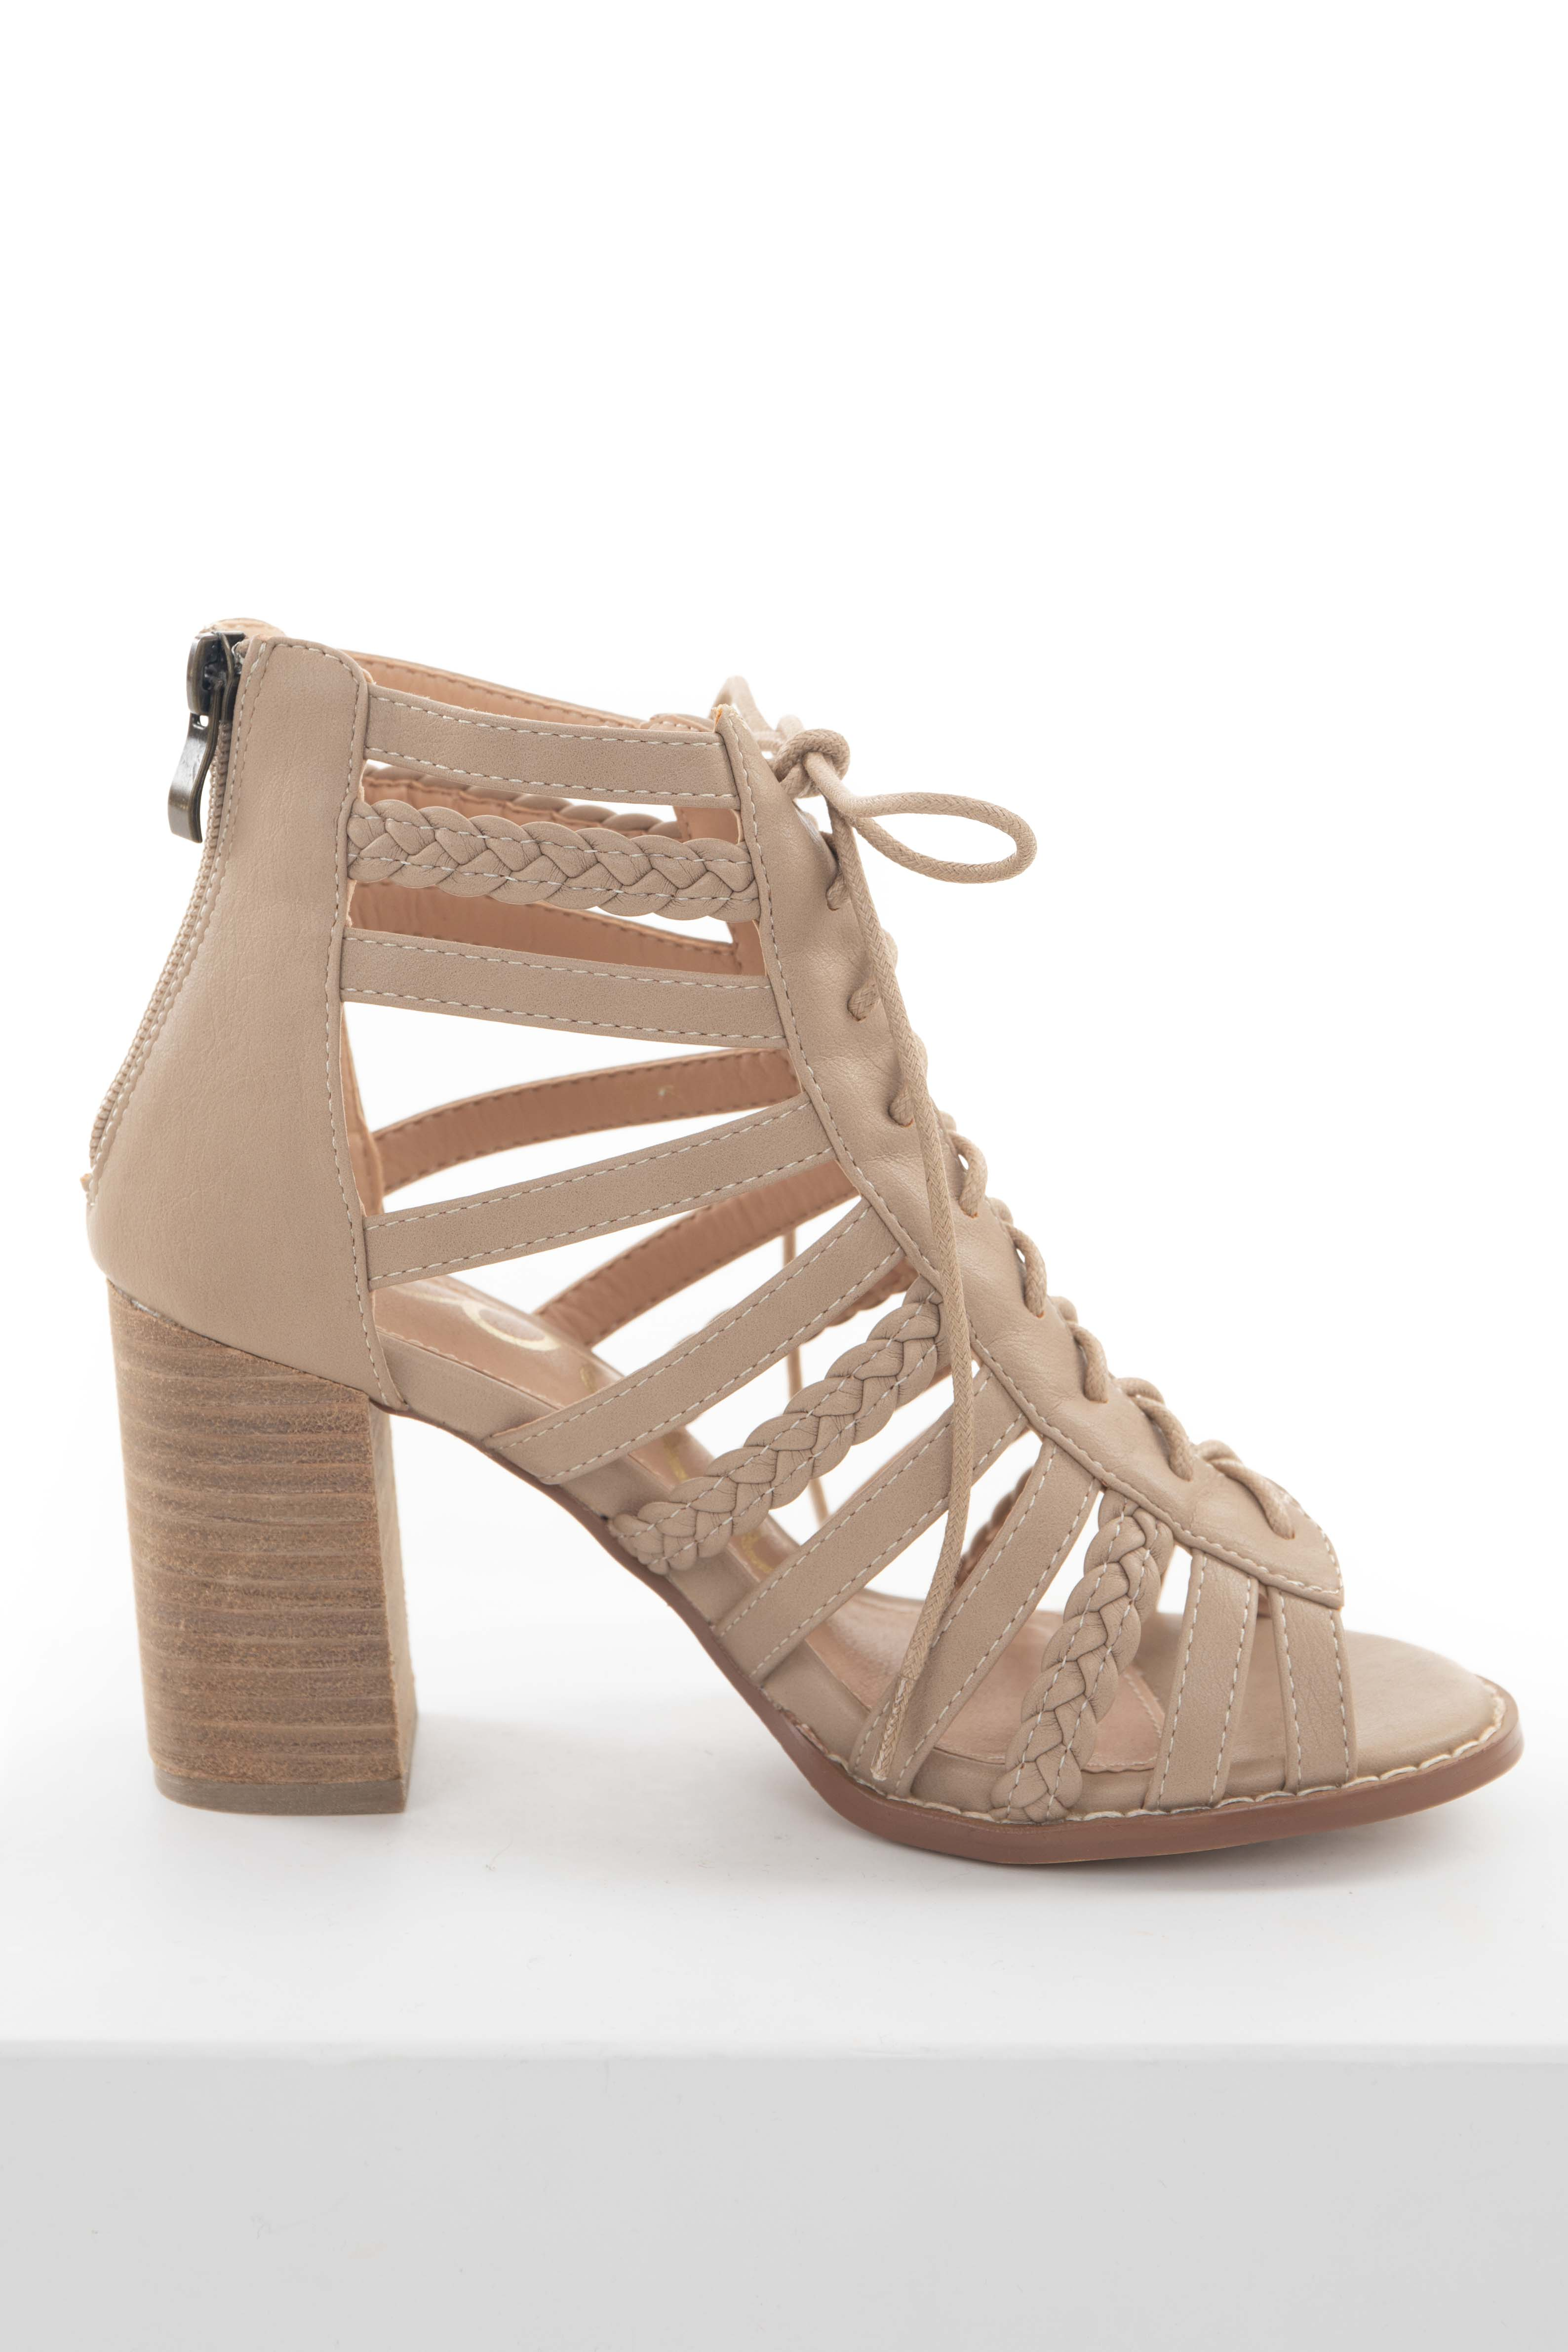 Latte Strappy Braided Heels with Lace Up Front